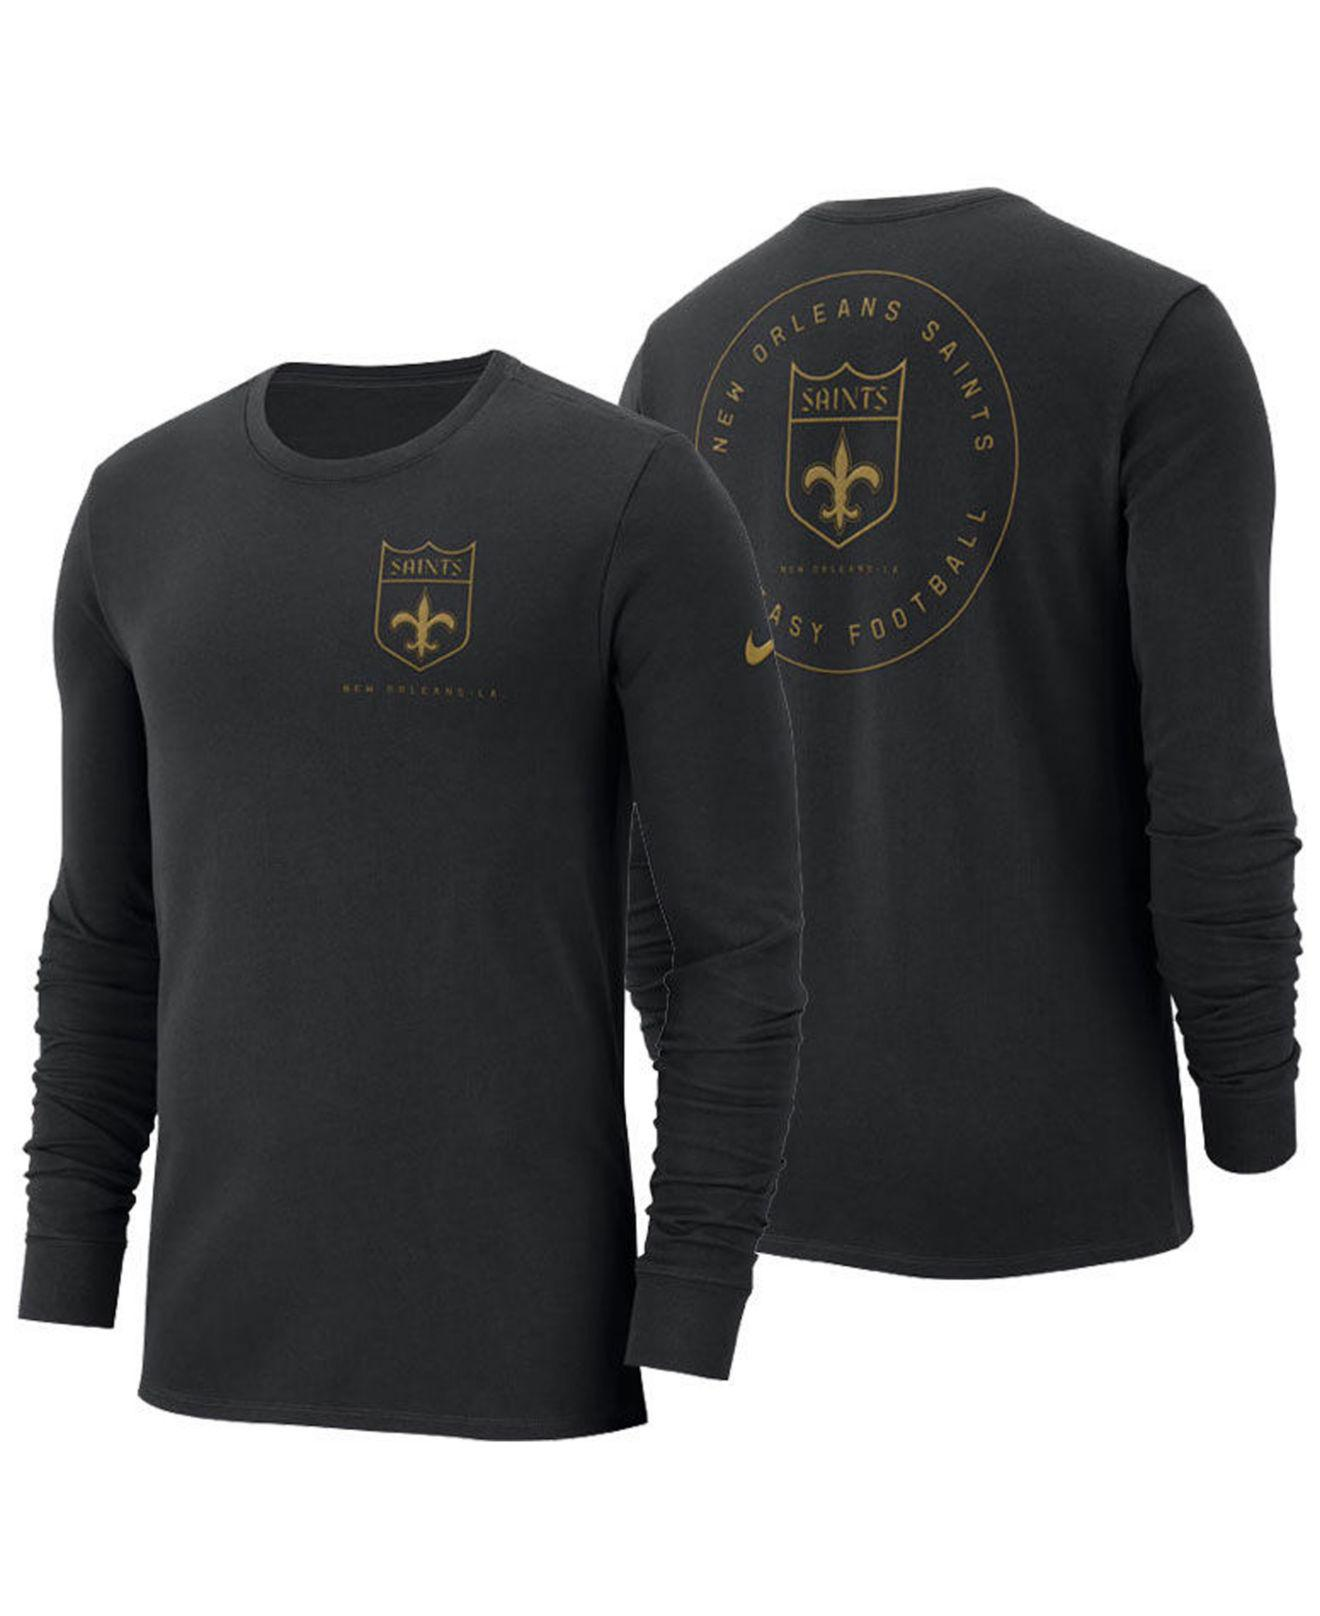 3d03dc5f3 Lyst - Nike New Orleans Saints Heavyweight Seal Long Sleeve T-shirt ...